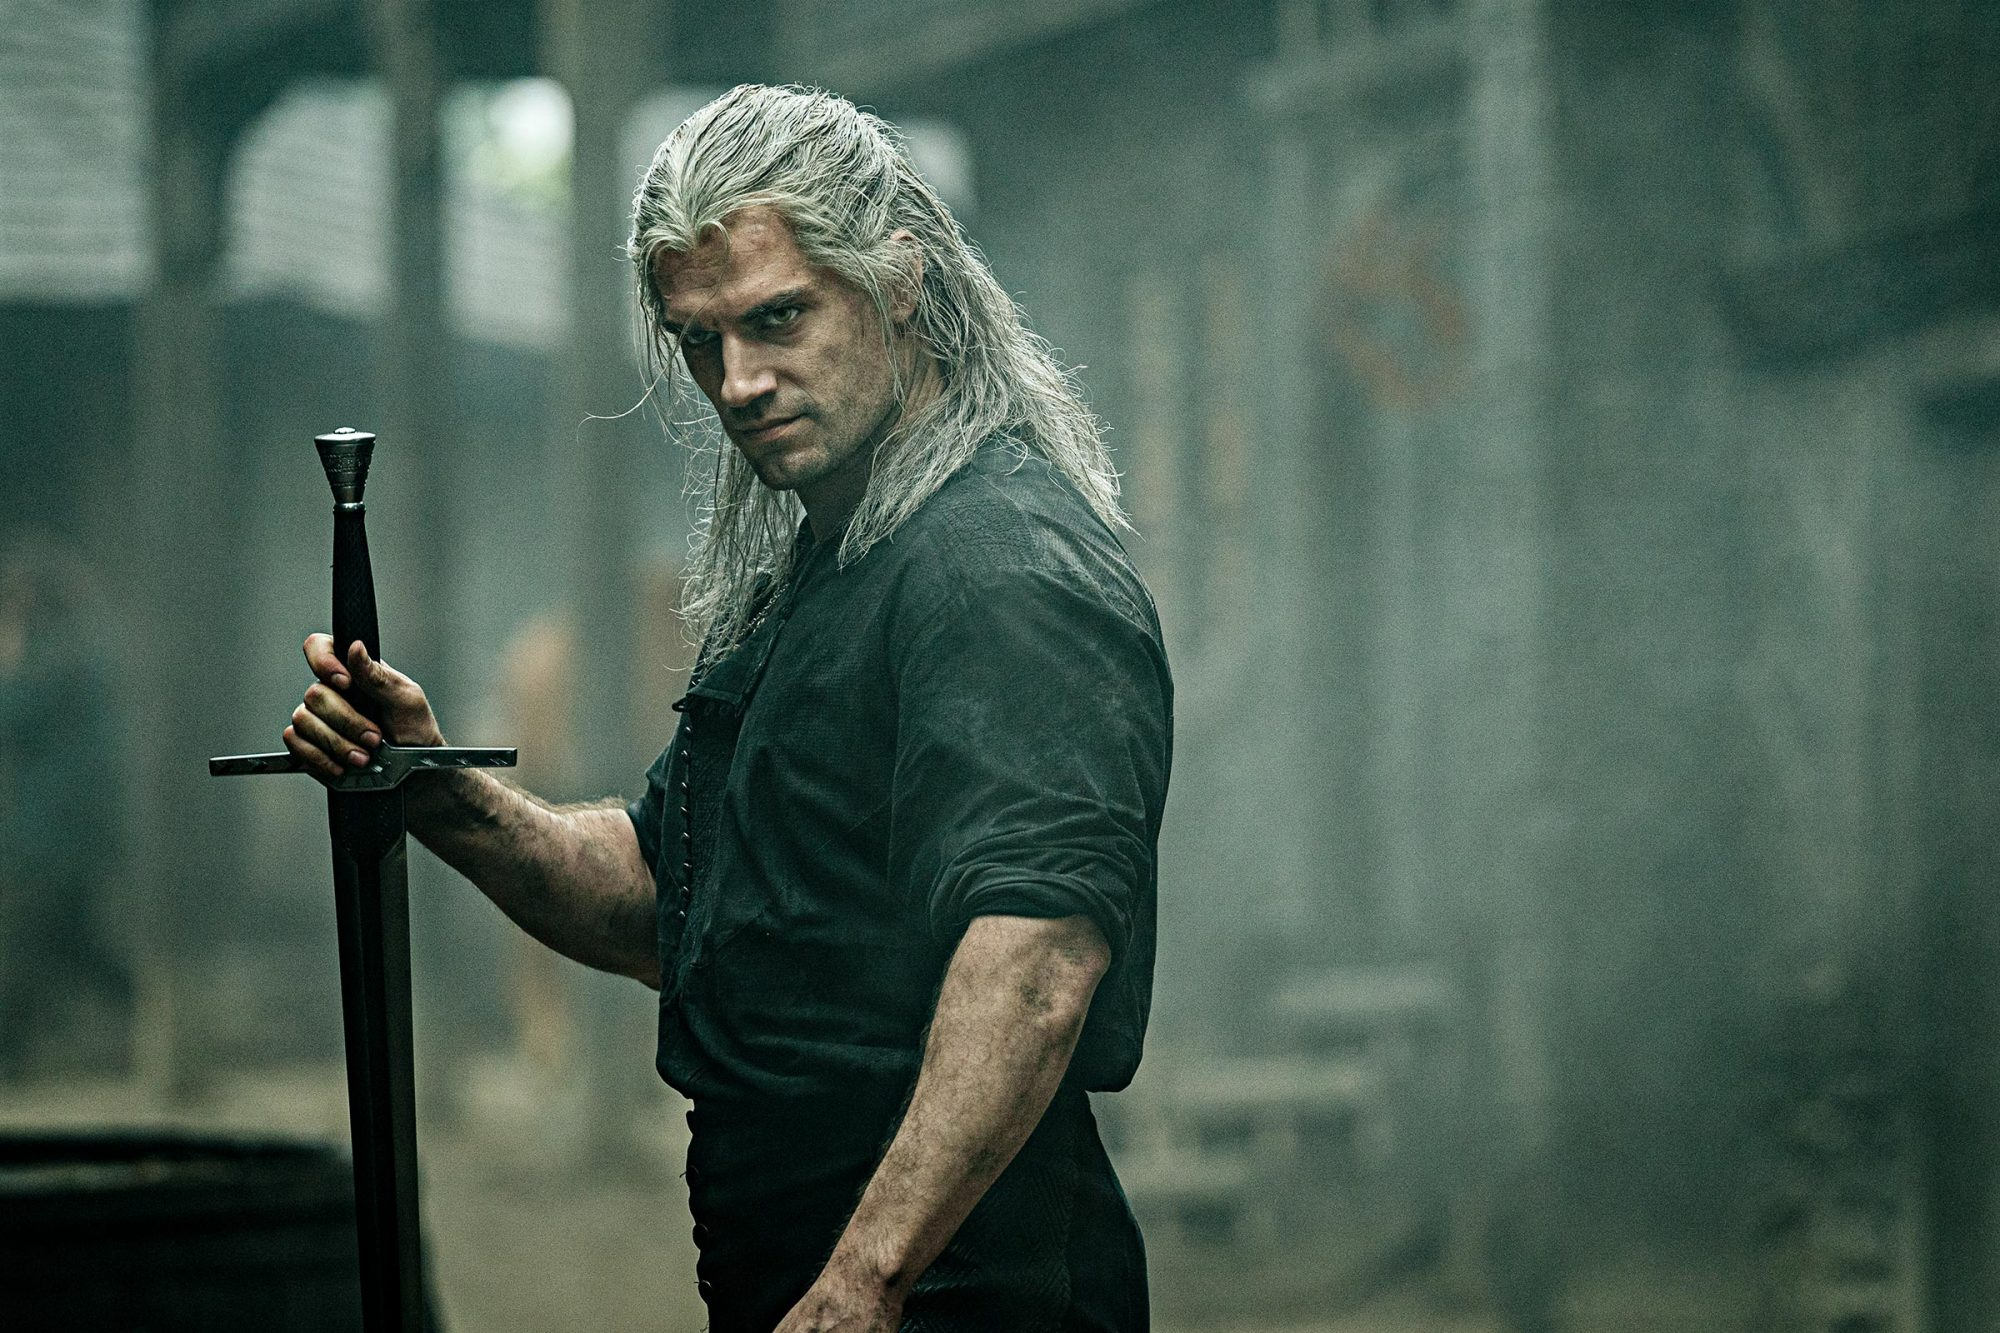 'The Witcher' season 2 adds another Witcher opposite Henry Cavill